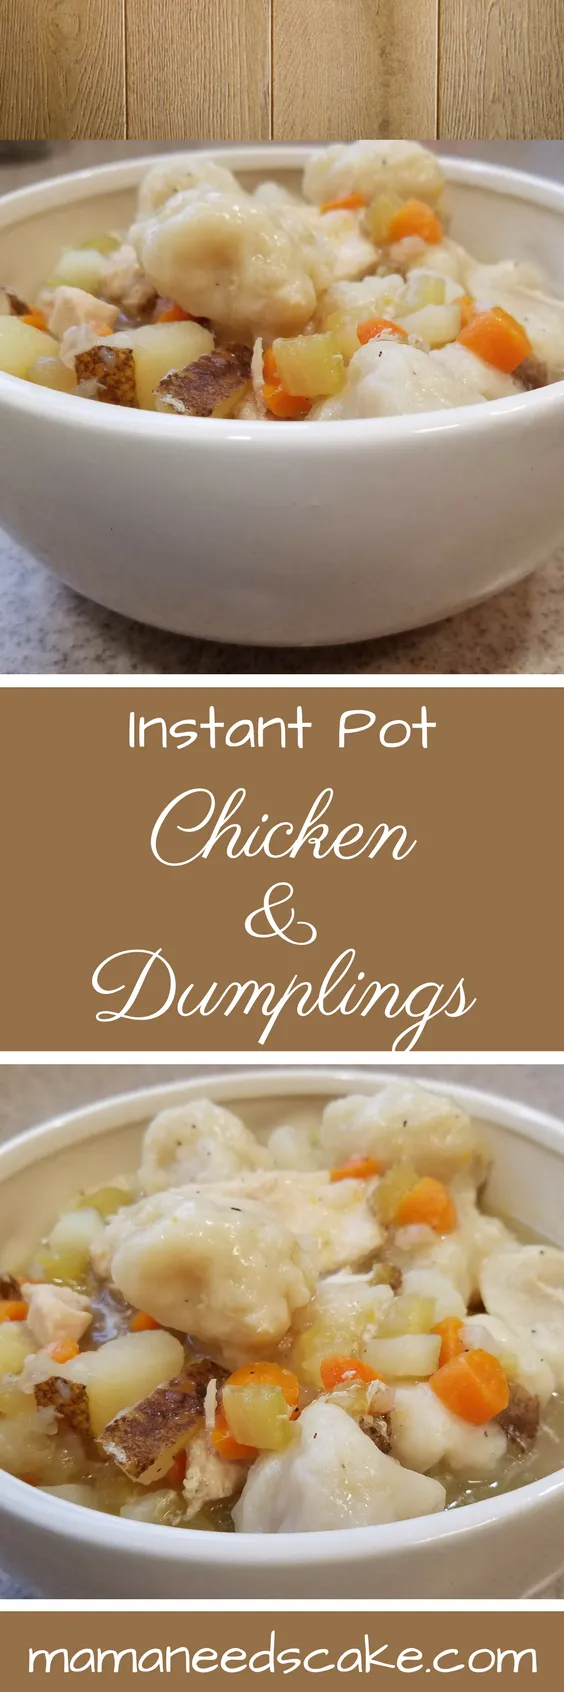 Instant Pot Chicken & Dumplings - Pressure Cooker - Mama Needs Cake